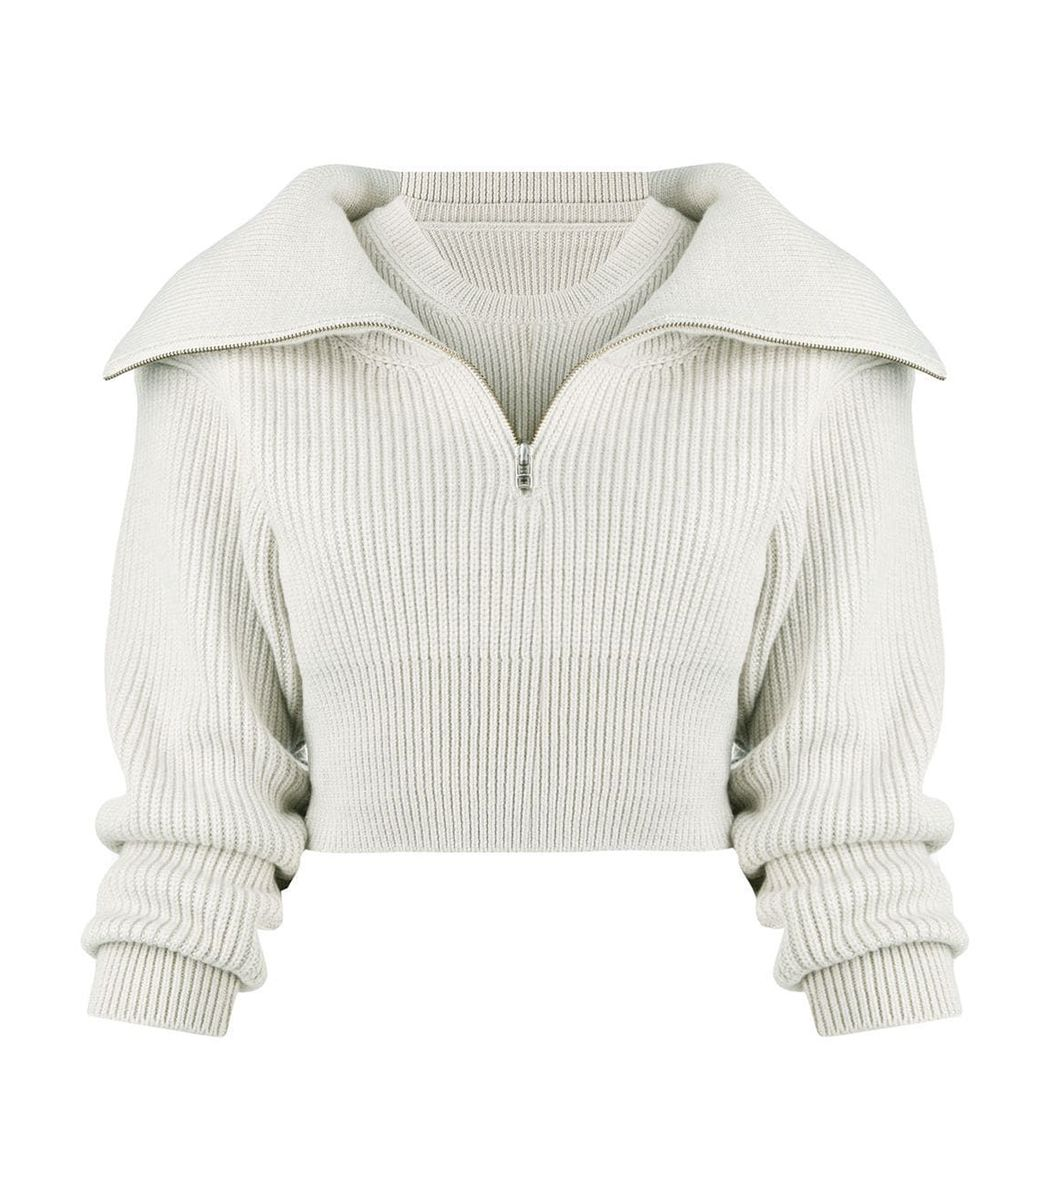 Jacquemus Wools La Maille Risoul Wool Sweater